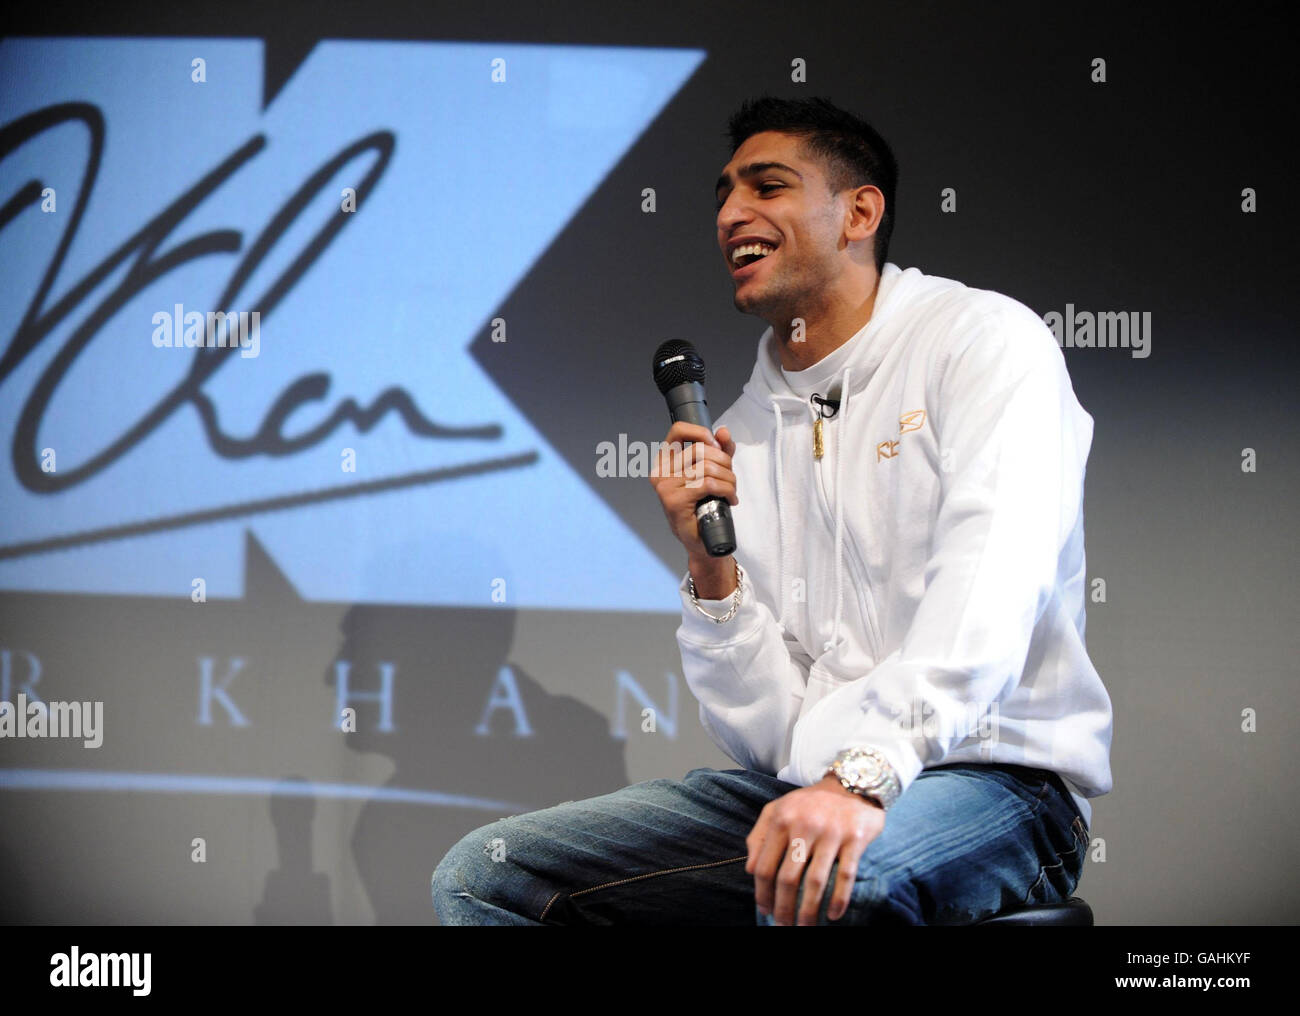 Boxing - Amir Khan Announcement - BFI Southbank - Stock Image